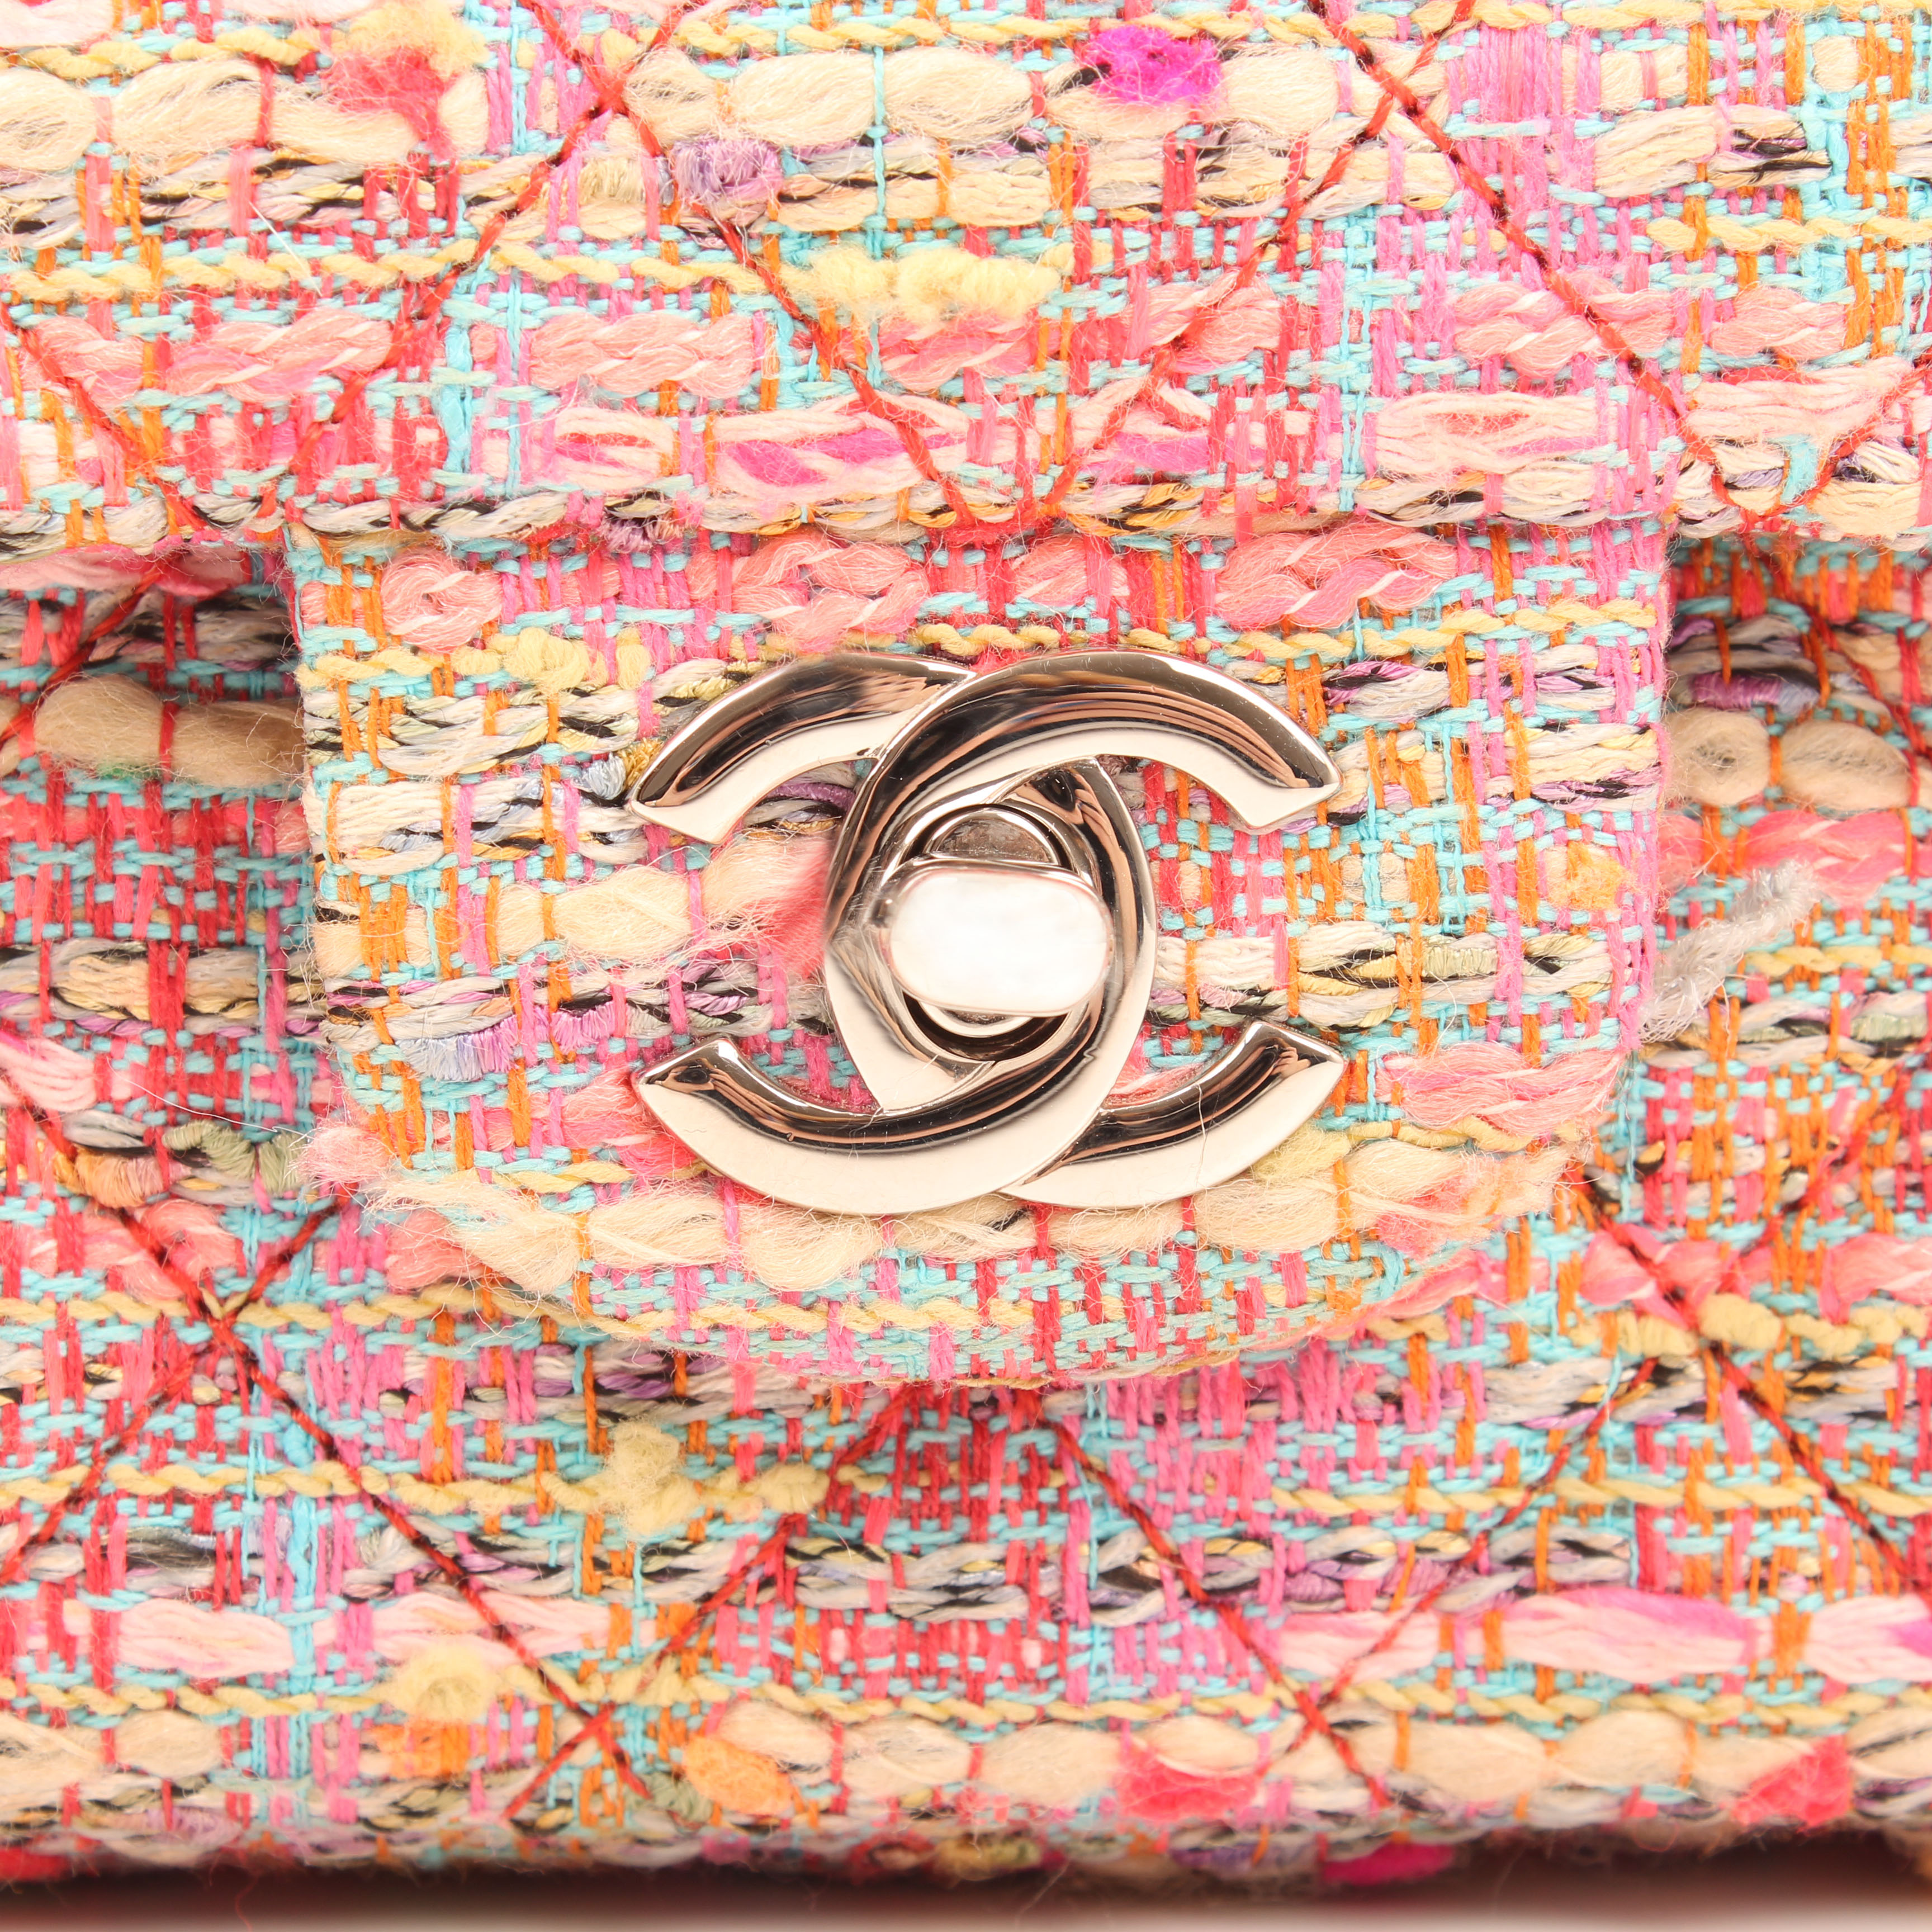 Image of turnlock from chanel timeless tweed pink multicolor neon double flap bag